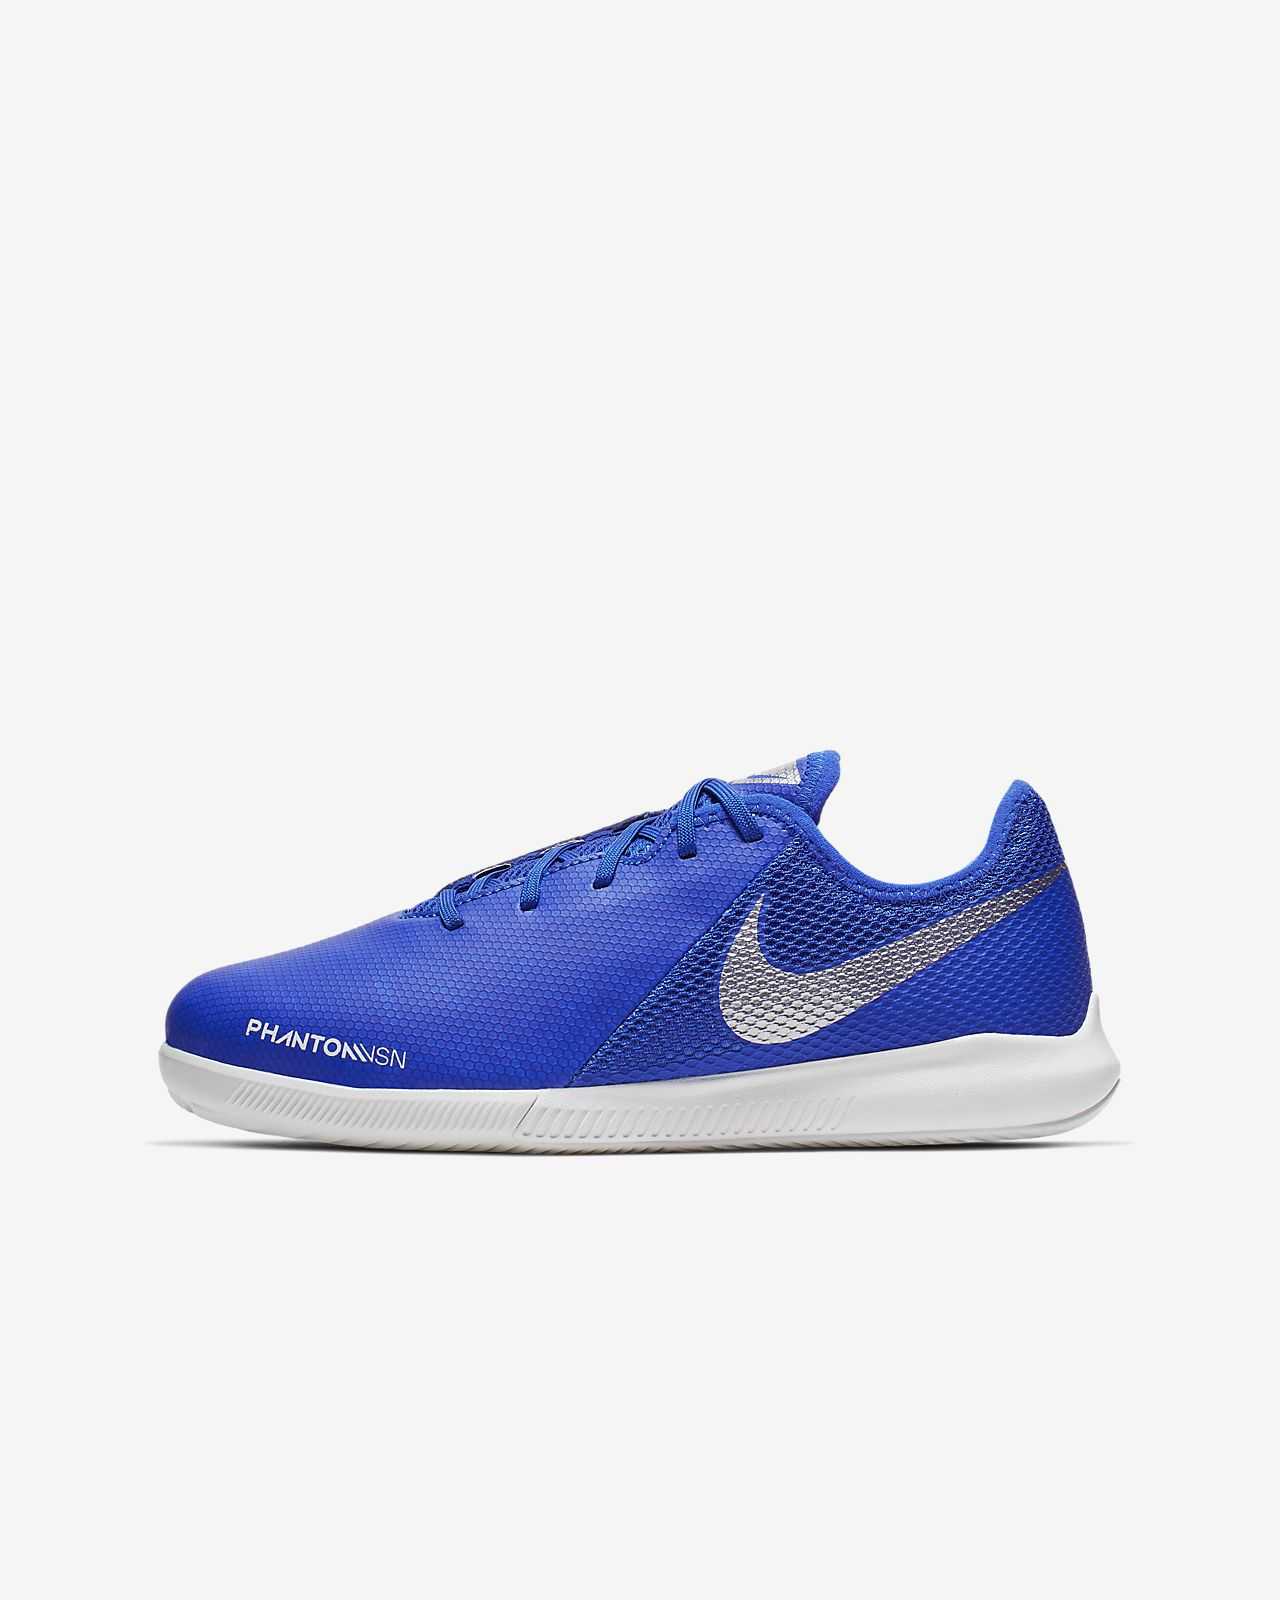 the latest cea43 e1d56 Younger Older Kids  Indoor Court Football Shoe. Nike Jr. Phantom Vision Academy  IC